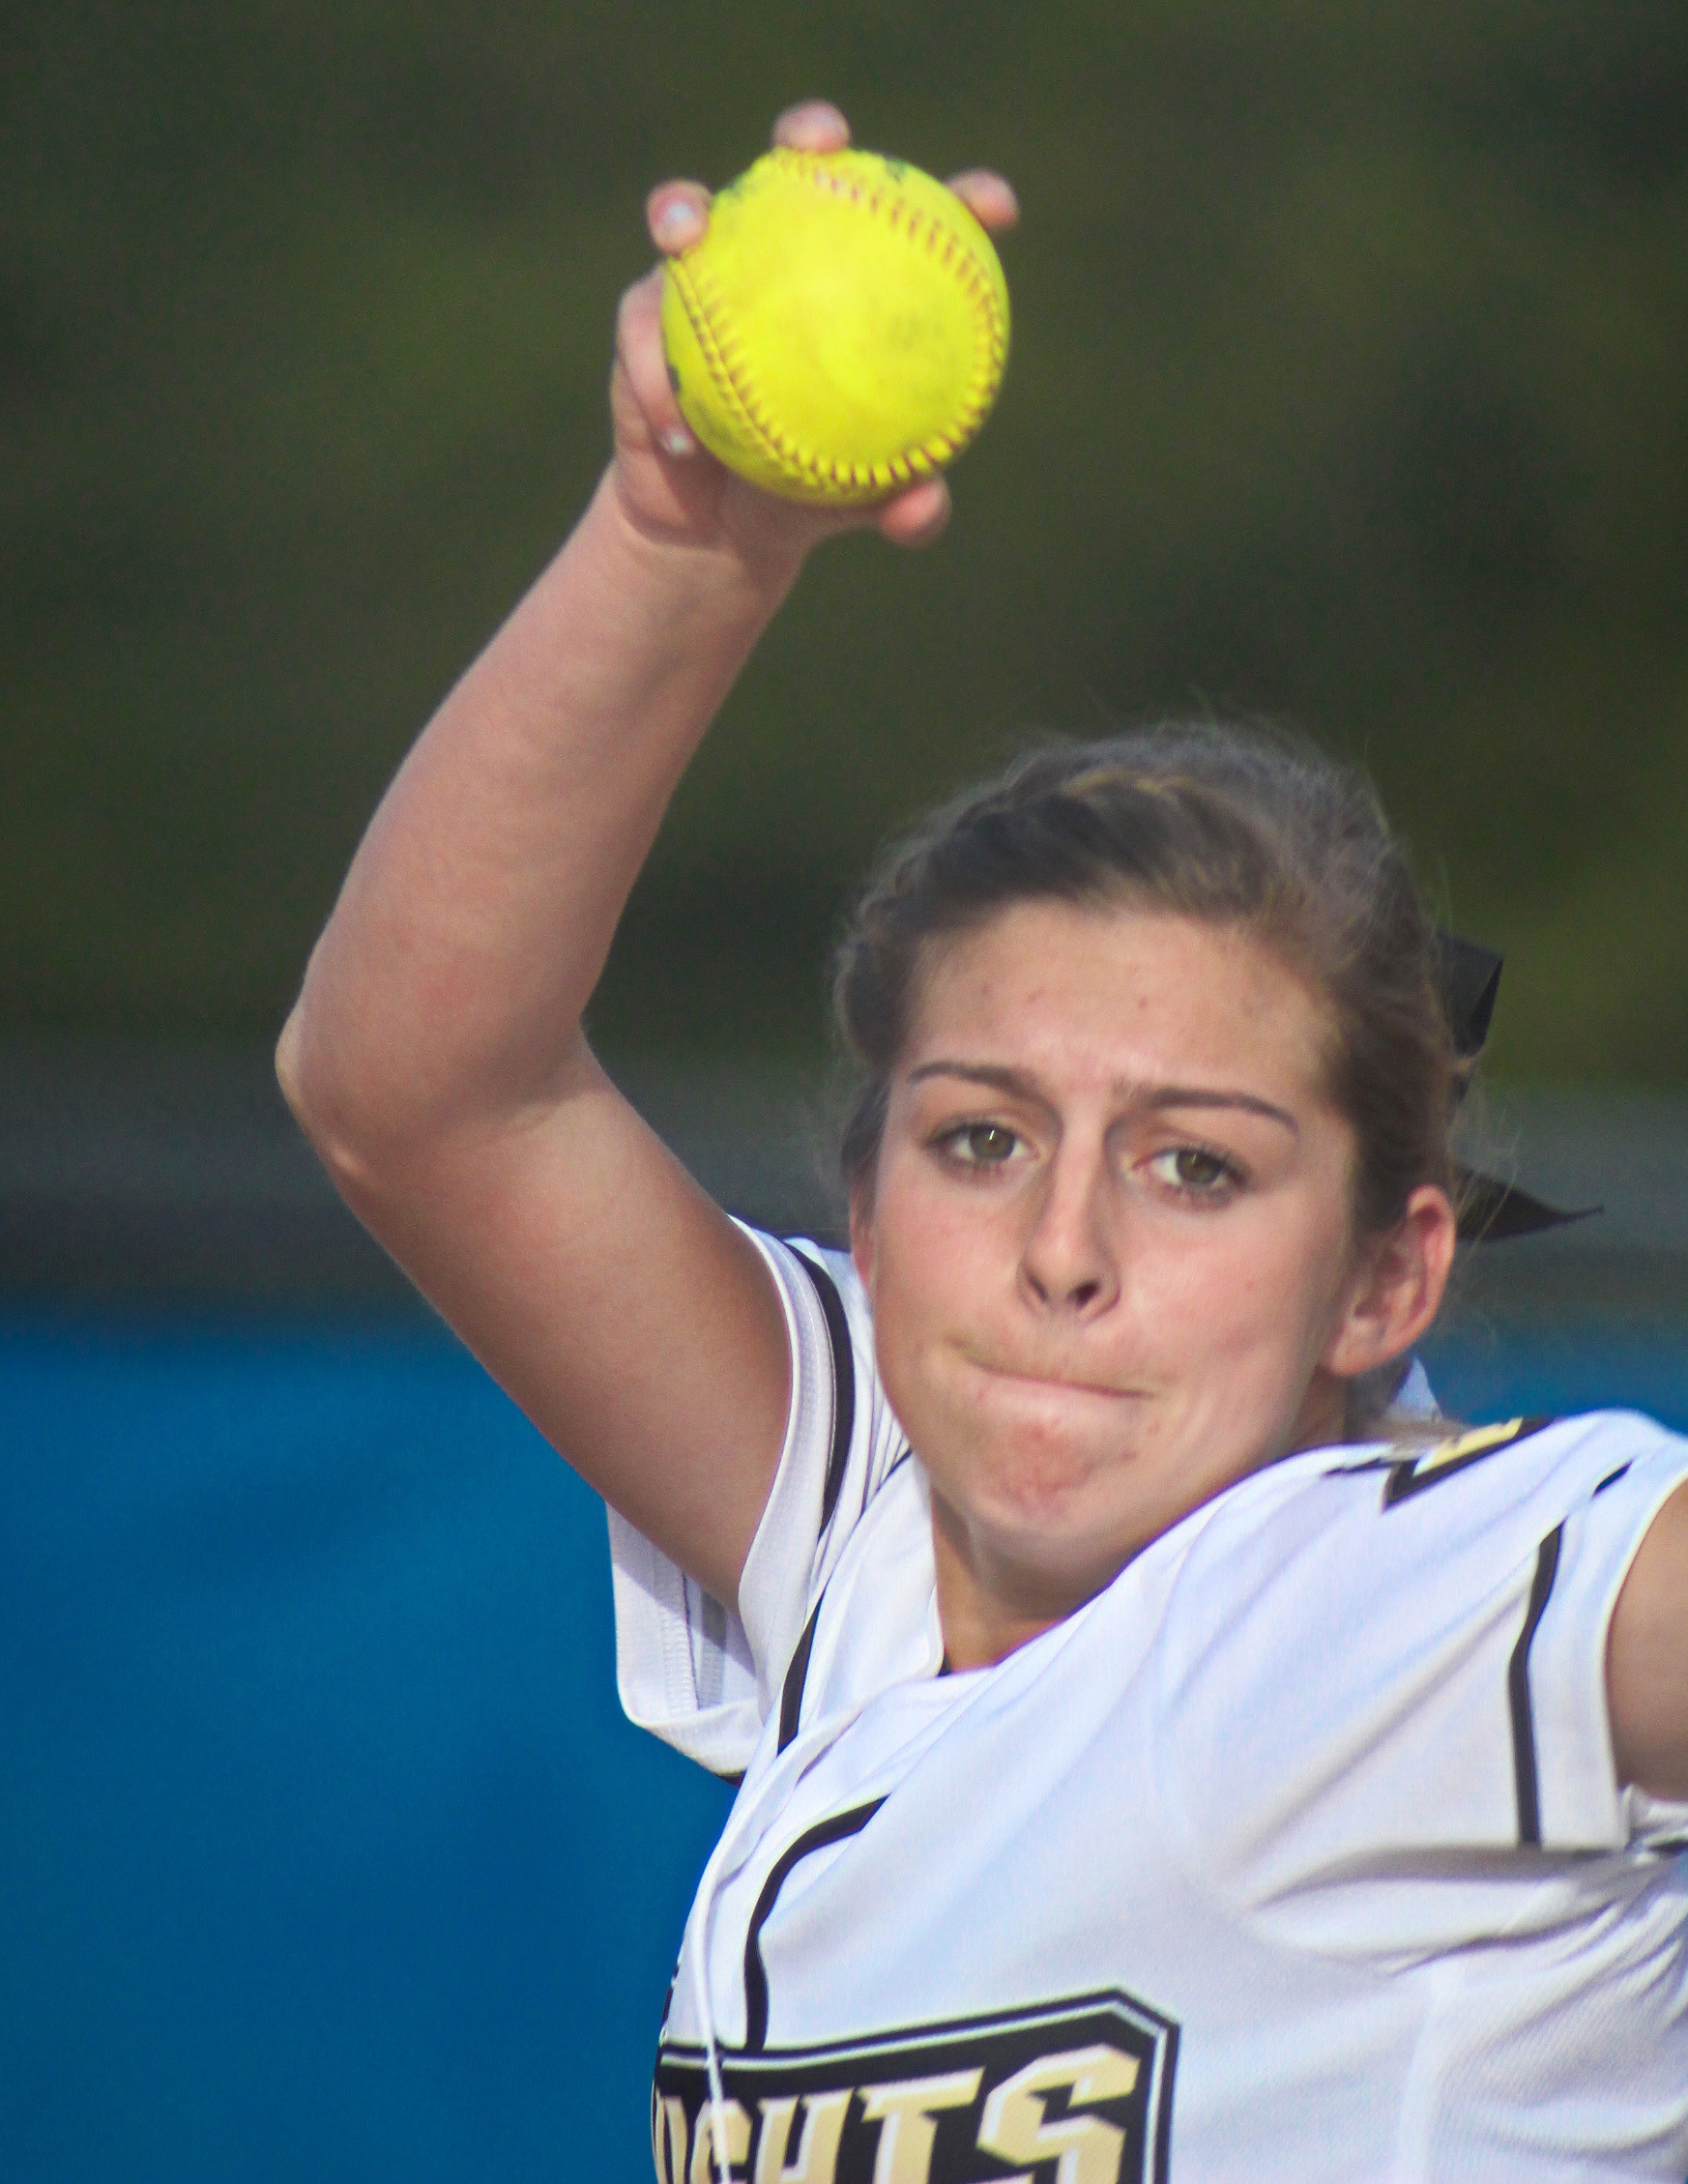 Oakleaf High junior pitcher Kelsey Sweatt is big arm for Lady Knights who will be returning much of last year's Final Four team for another shot at a state title, this time in Class 7A.